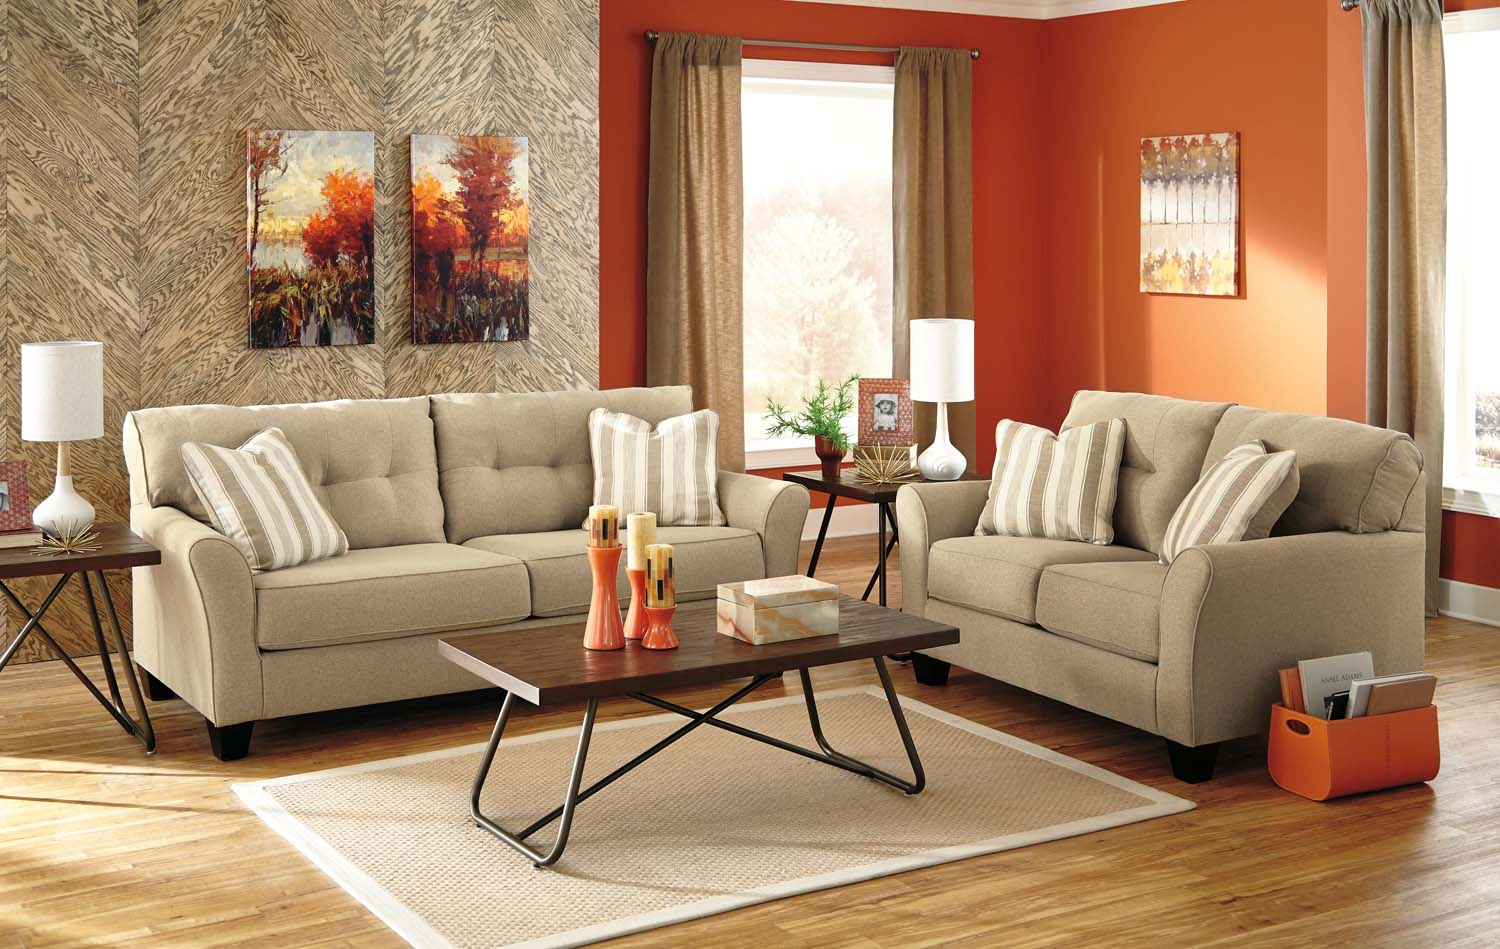 Ashley 51902 Laryn   Khaki Living Room Set Houston Texas USA Aztec Furniture